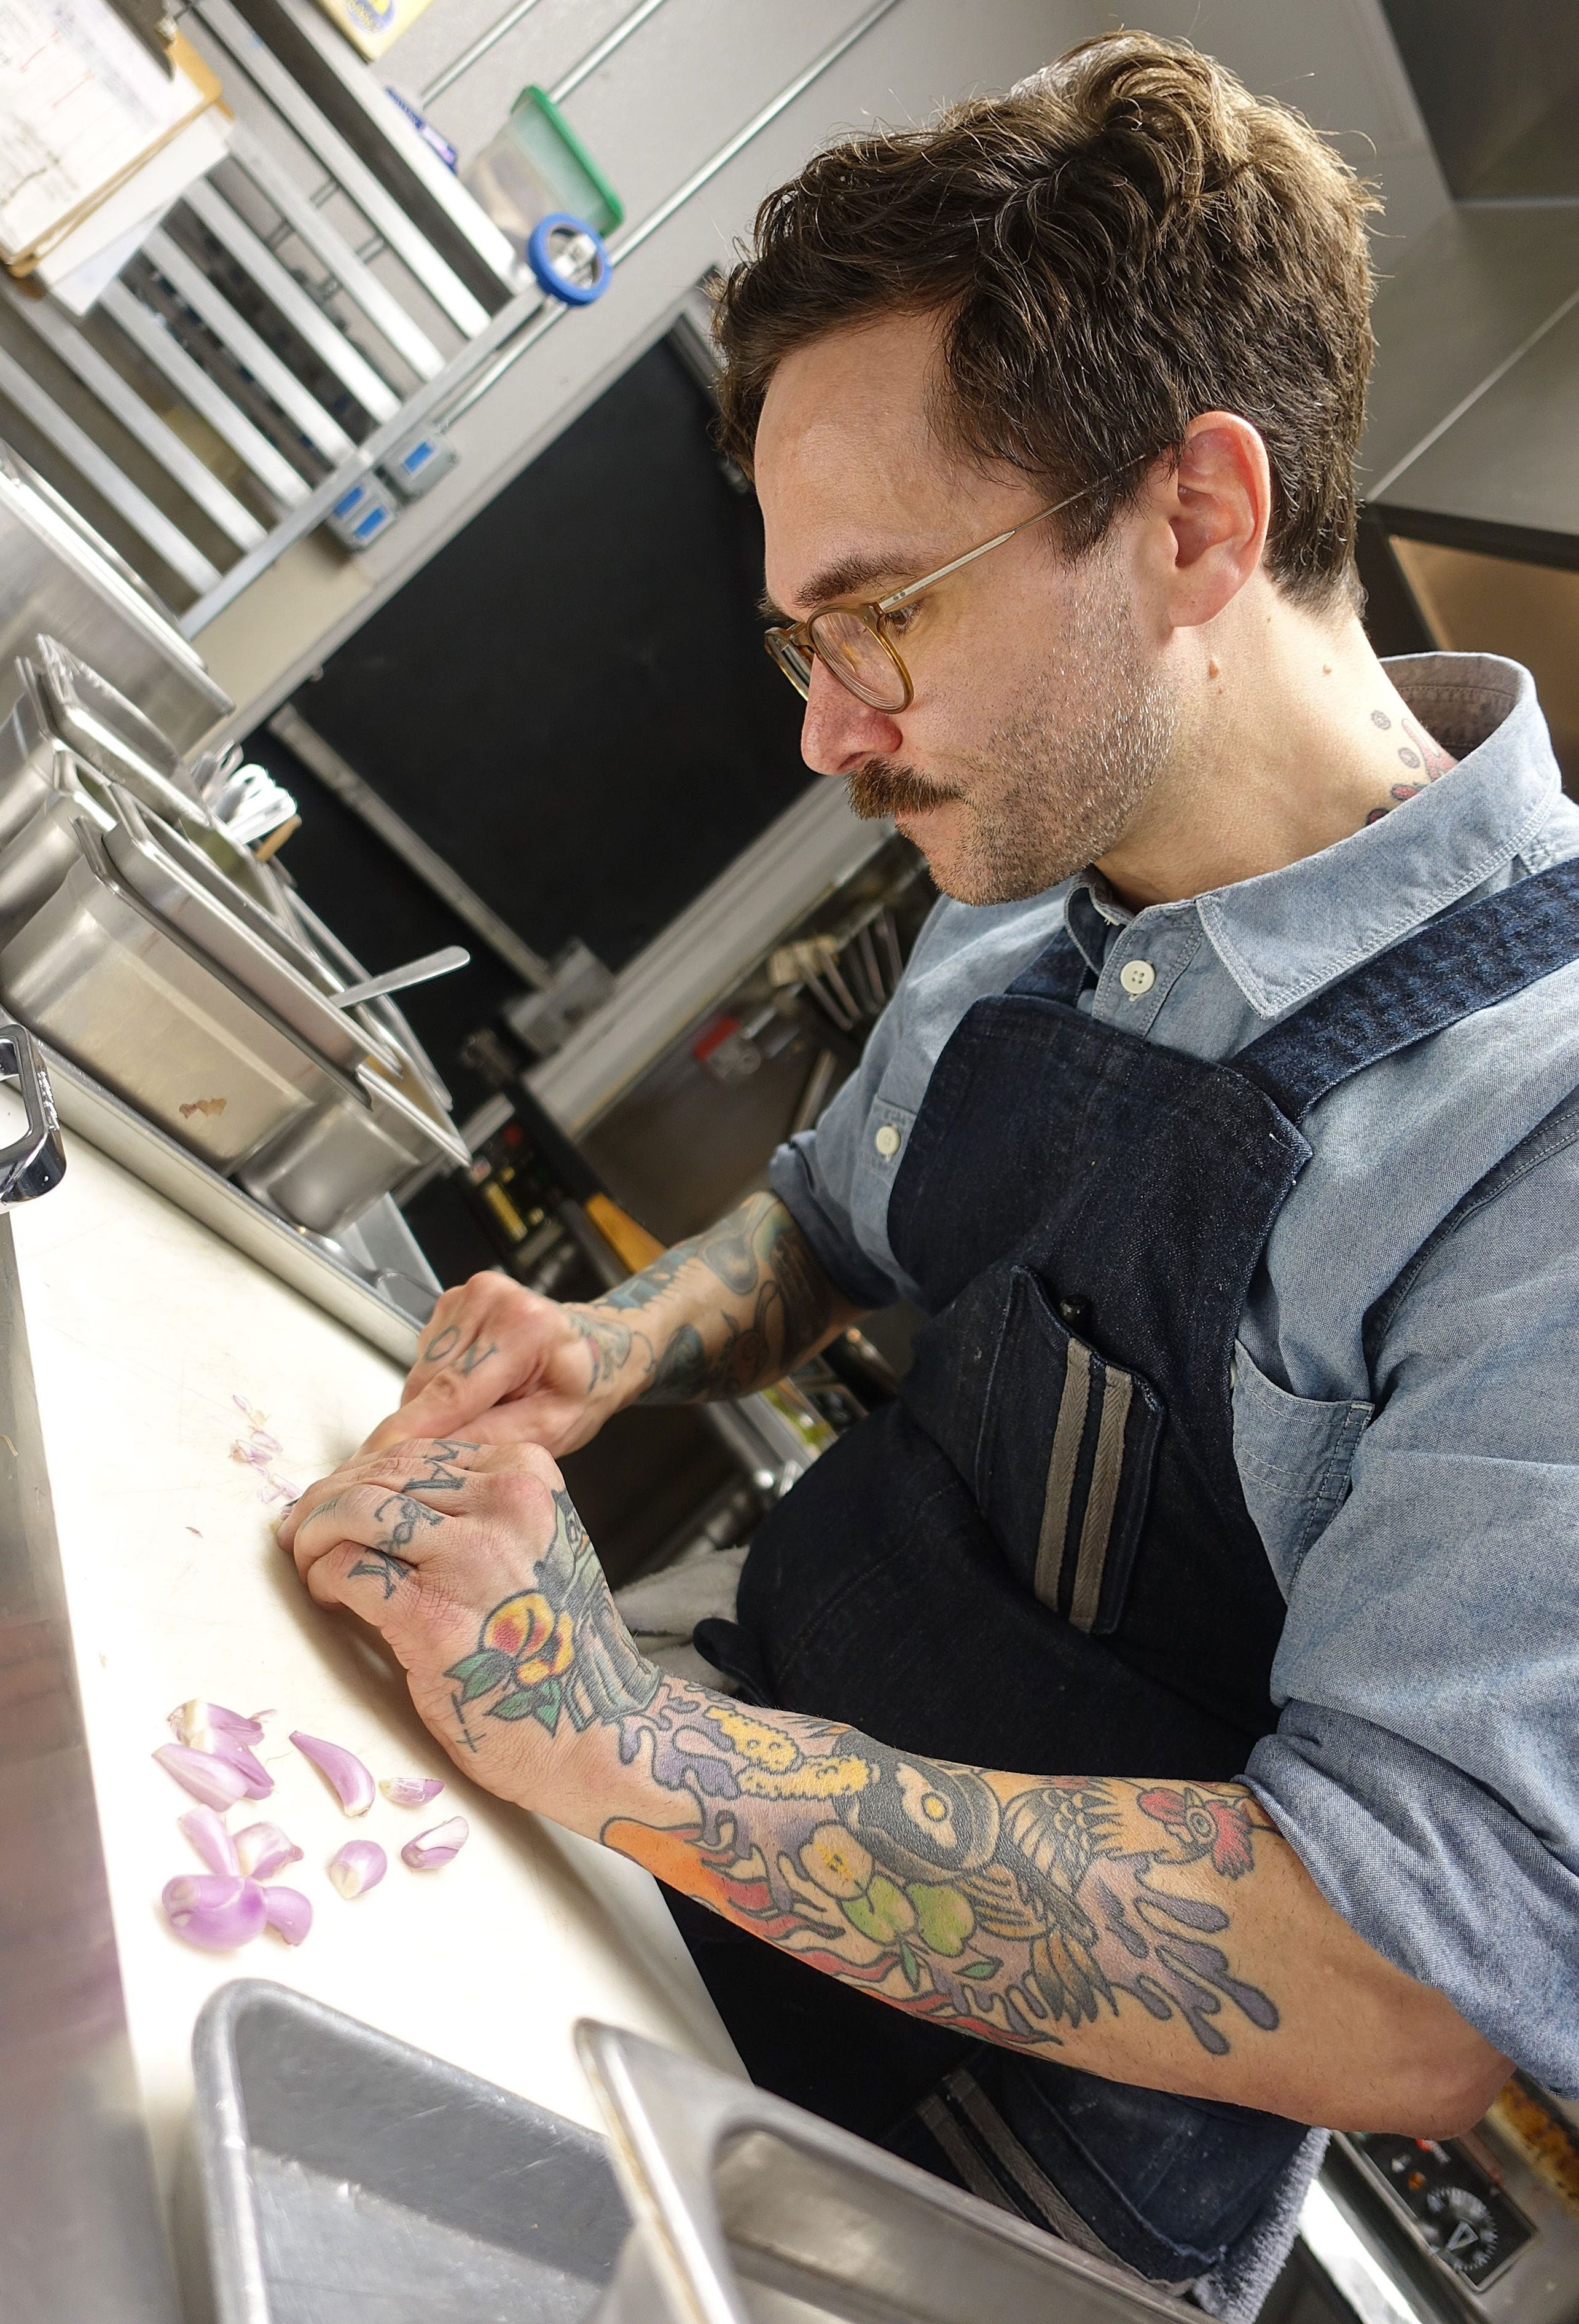 Jeff Kraus of Crepe Bar prepares a dish with i'itoi onions.